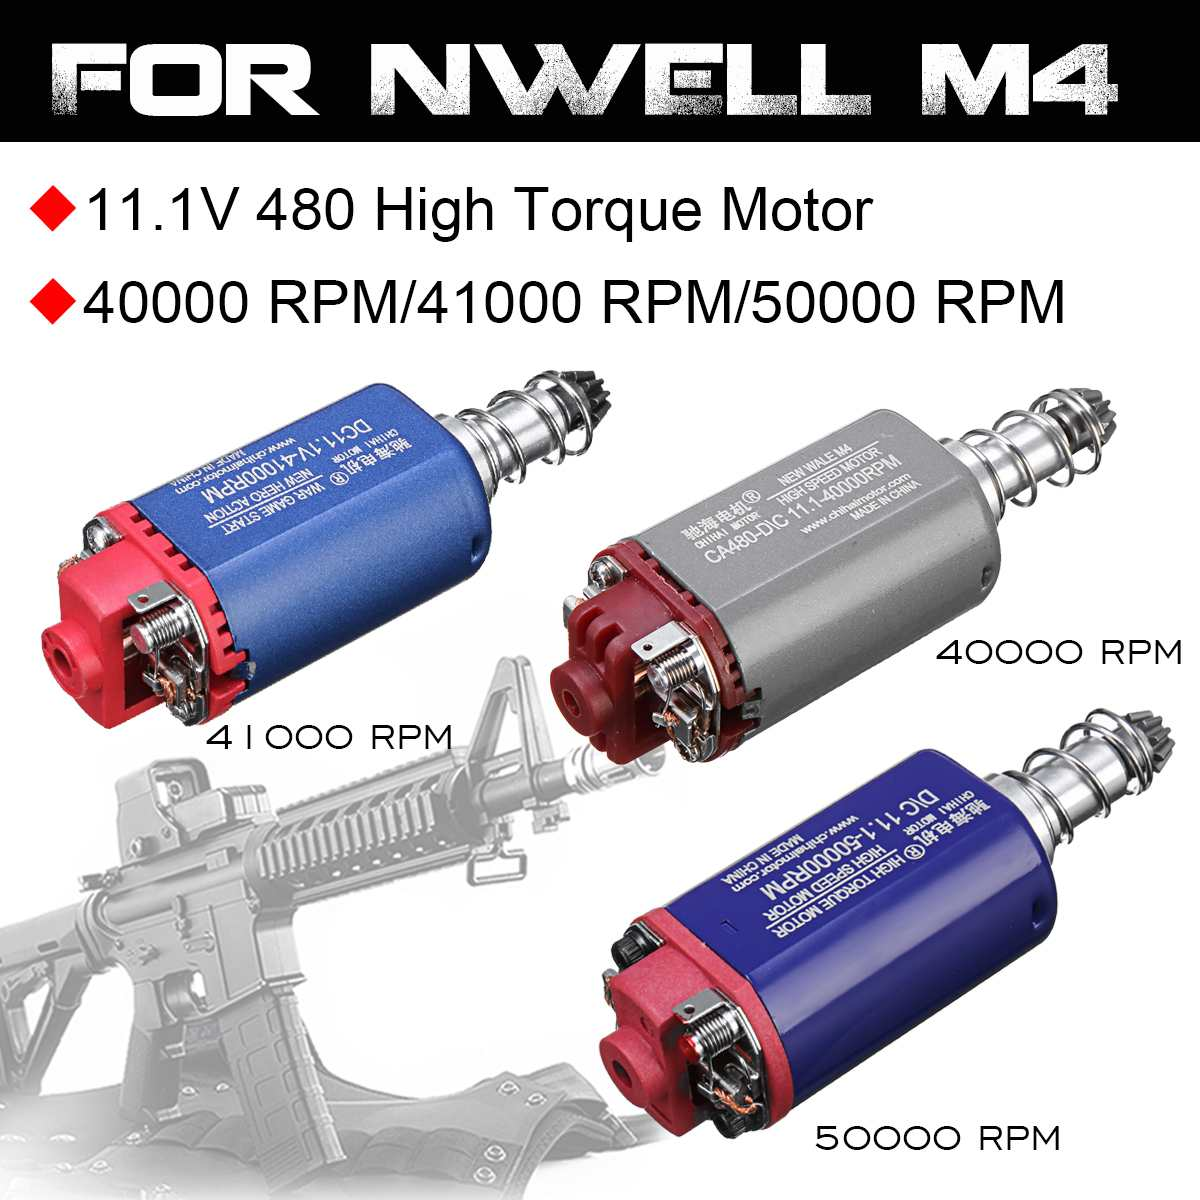 11.1V 40000/41000/50000RPM 480 High Torque Speed DC Motor For NWELL M4 AEG M110 M12 Gel Ball Blasters Toy Guns Replacement Acces11.1V 40000/41000/50000RPM 480 High Torque Speed DC Motor For NWELL M4 AEG M110 M12 Gel Ball Blasters Toy Guns Replacement Acces